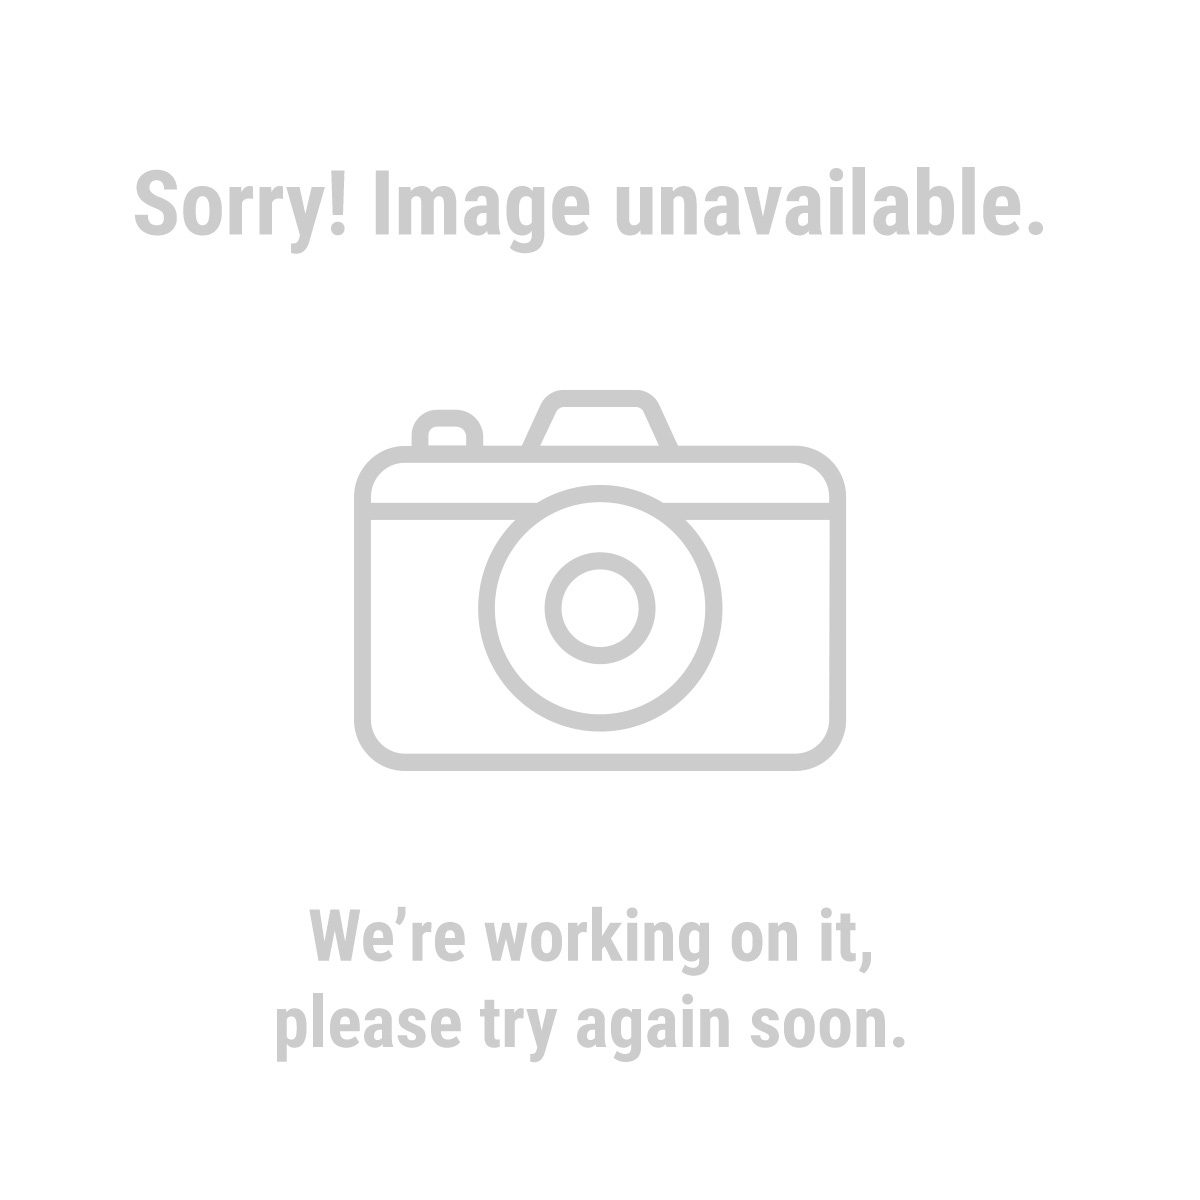 Camper trailer dolly new blue camper trailer dolly for Outboard motor dolly harbor freight